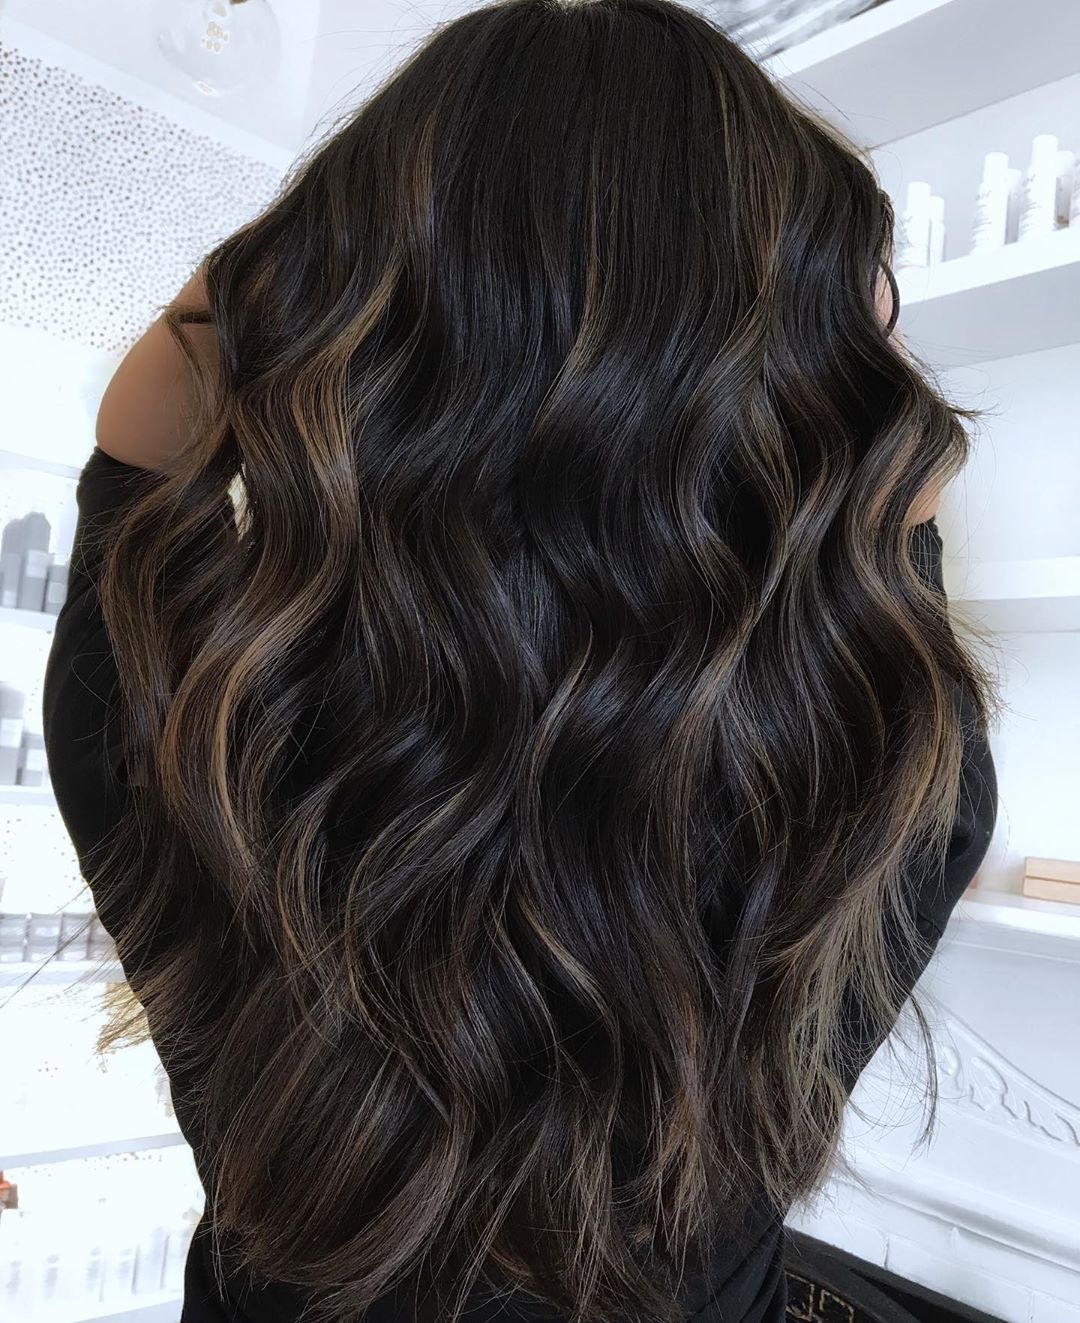 Black Hair with Dark Caramel Highlights